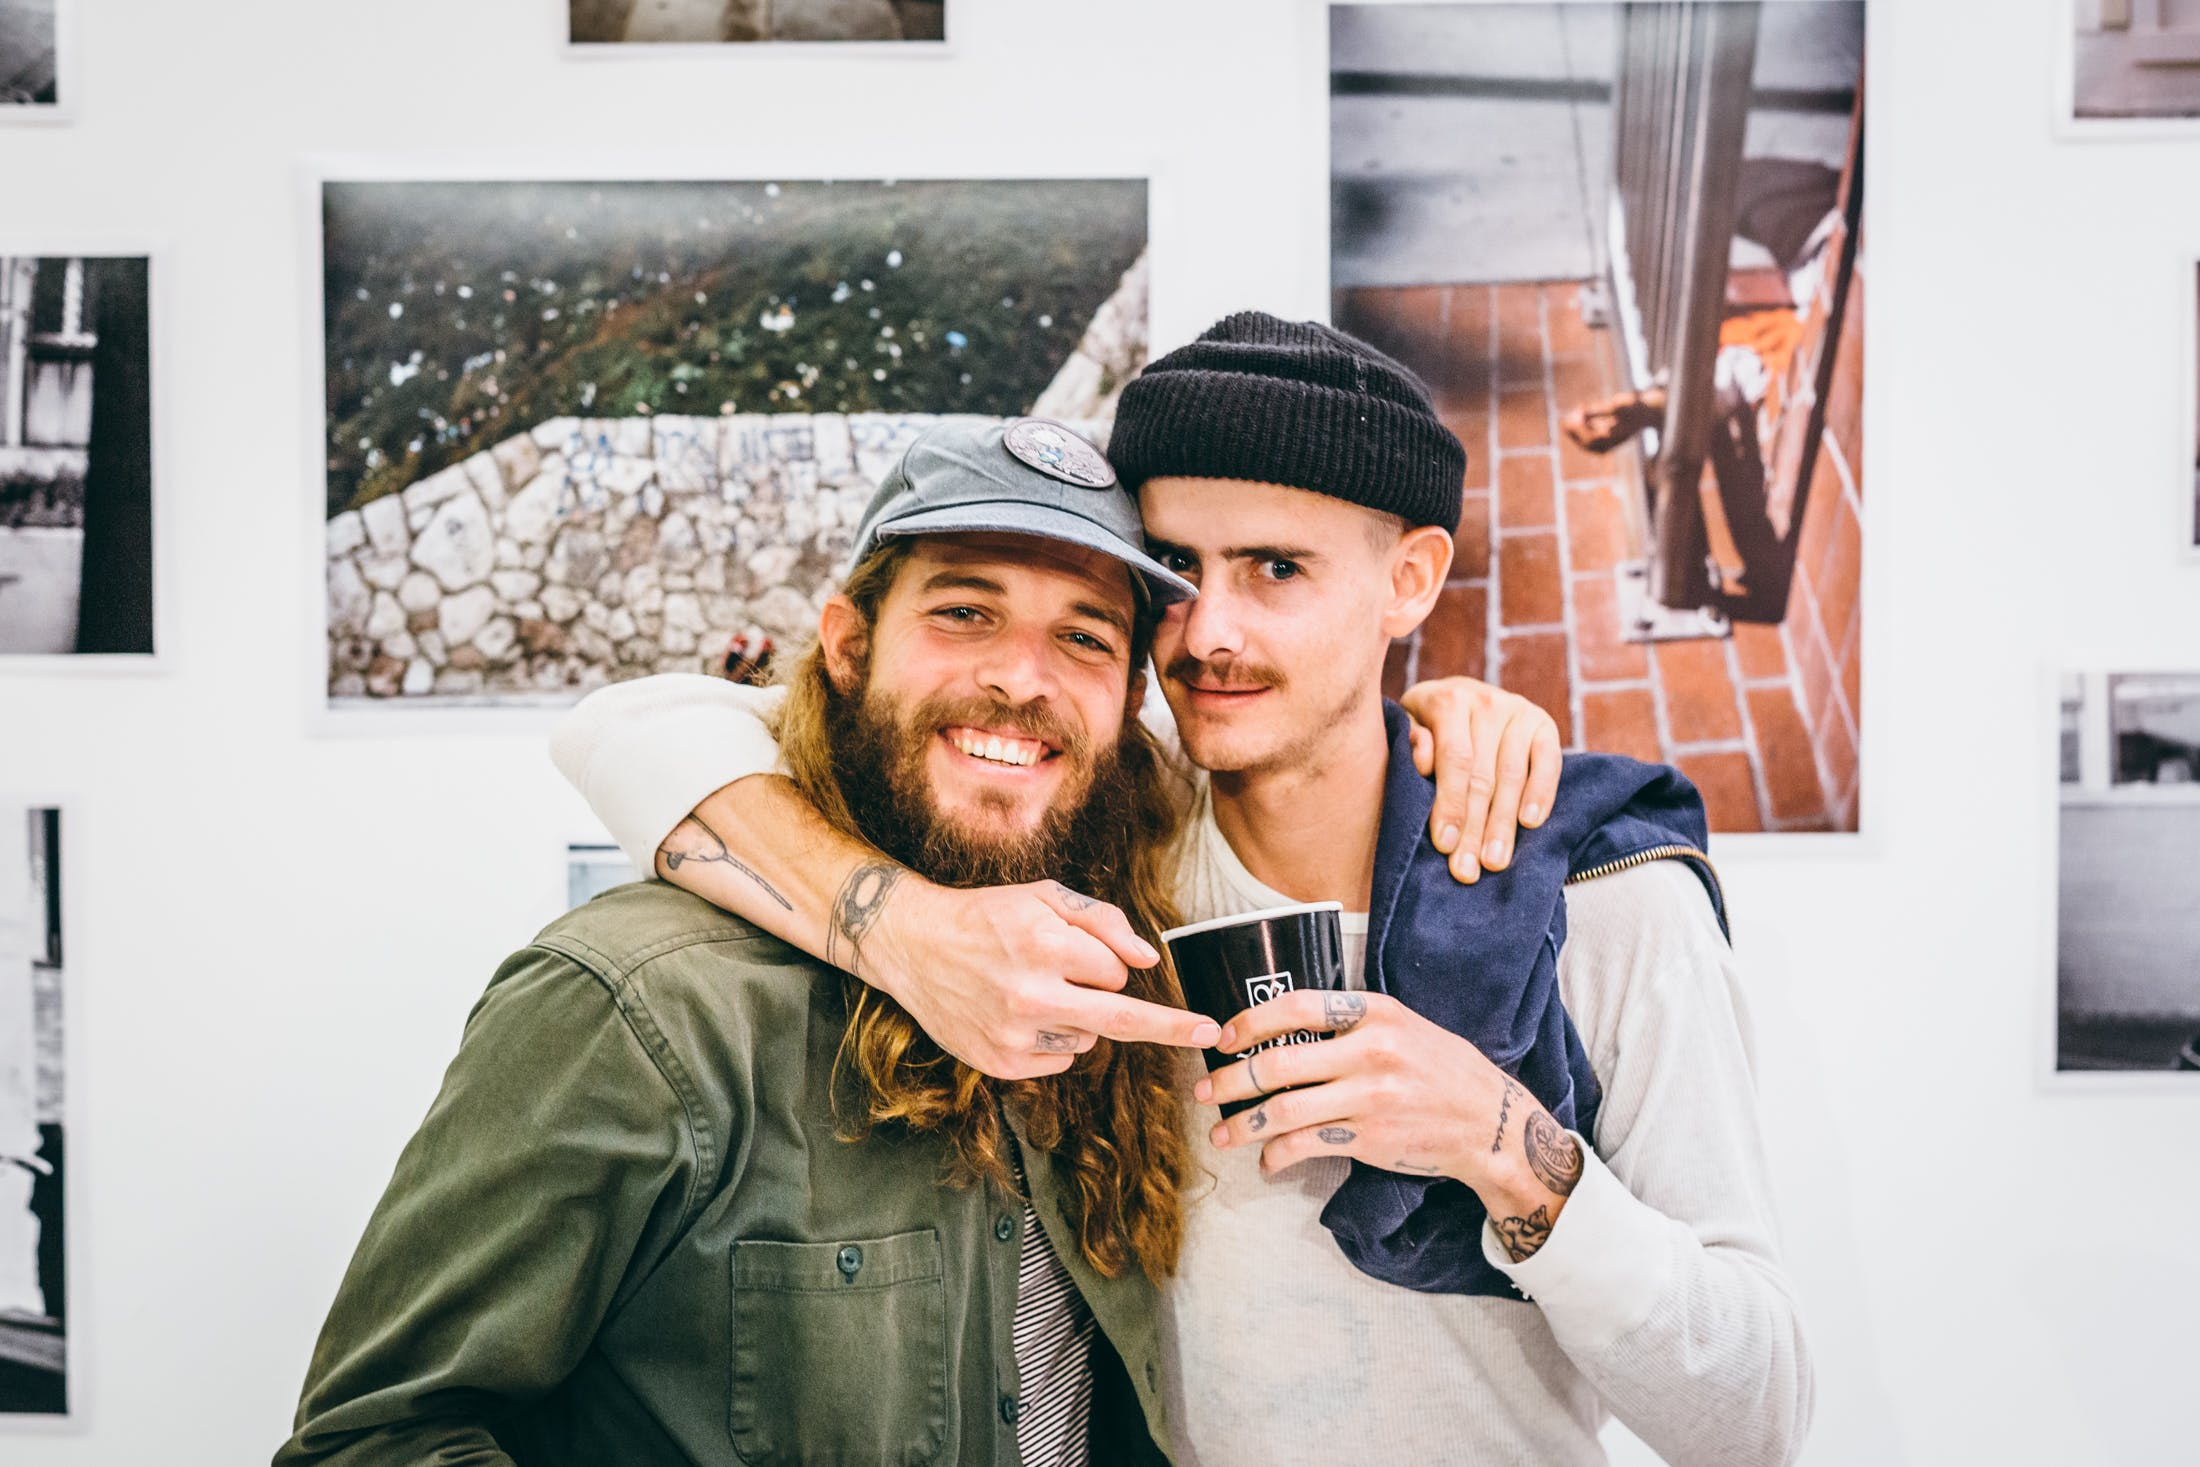 Dolan Sterns and Brian Delatore at their joint art show for Brixton Union